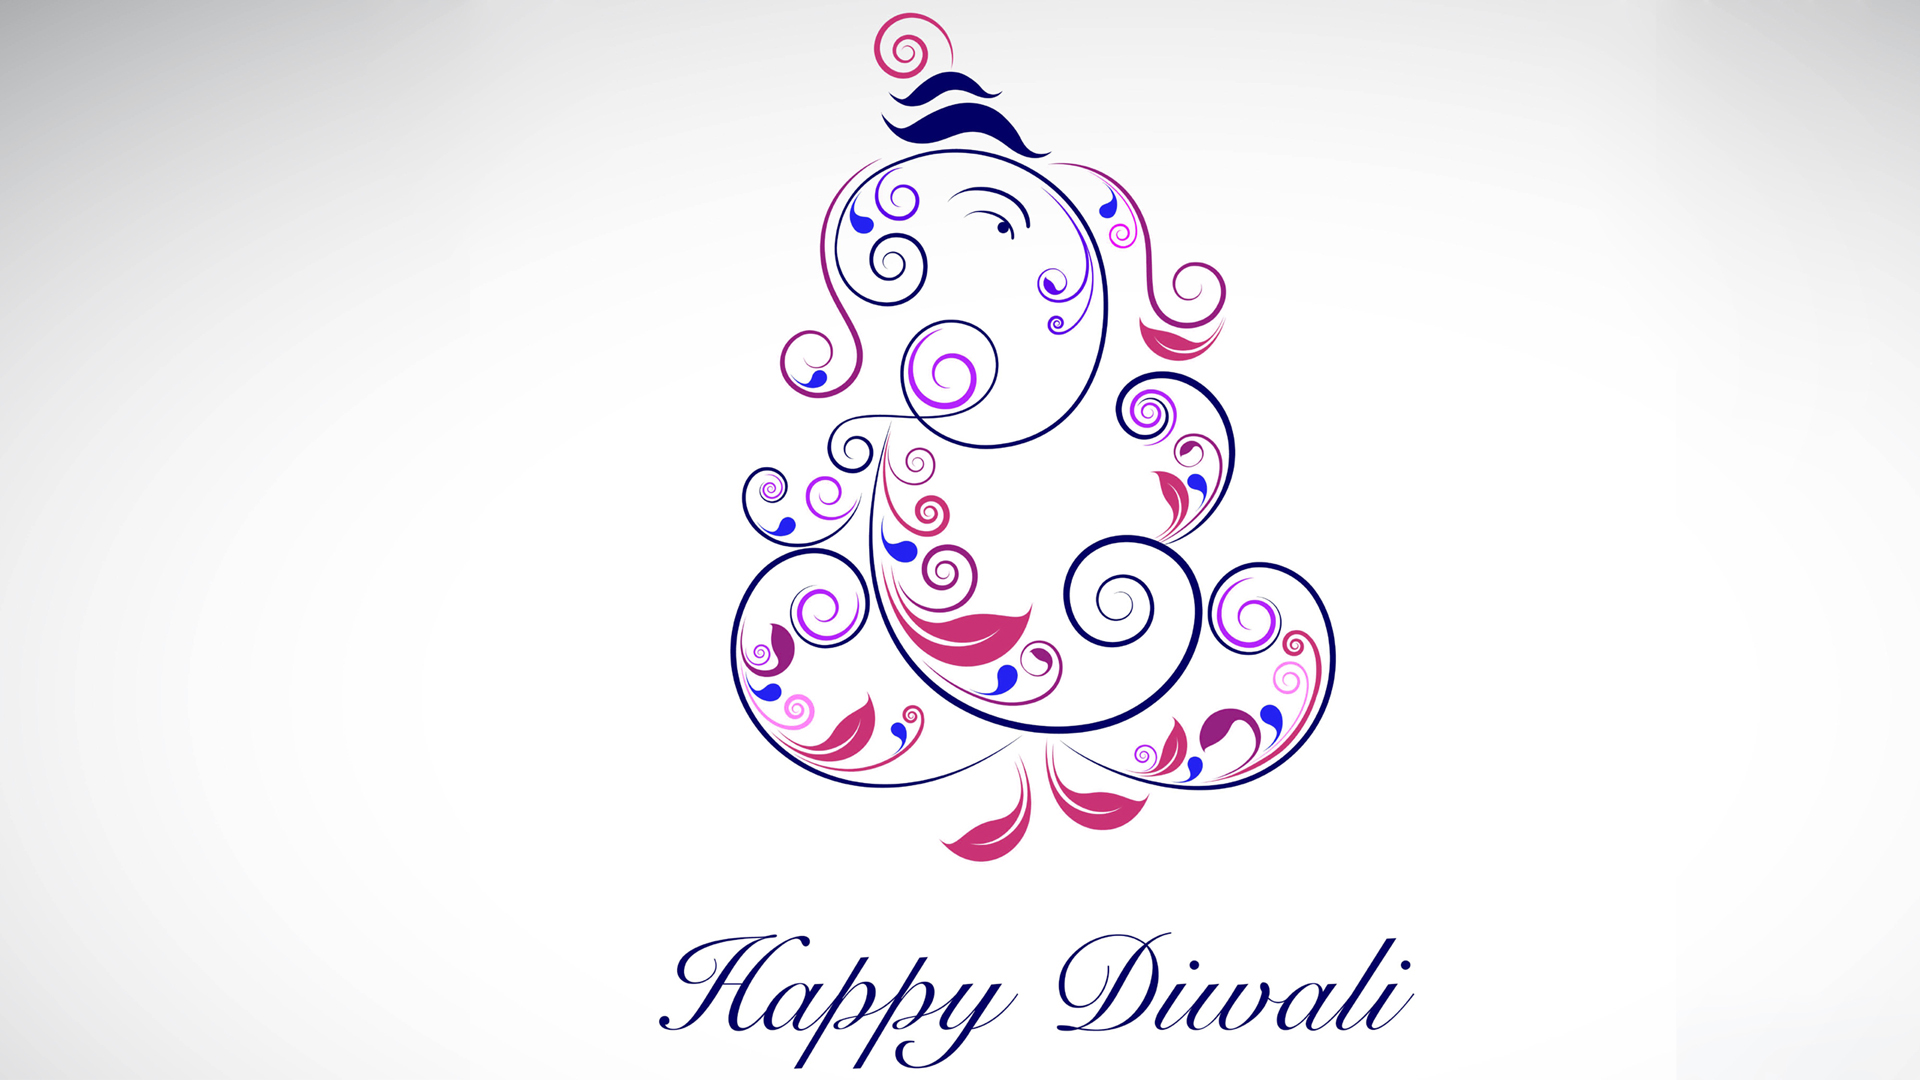 happy-diwali-ganesha-hd-wallpaper